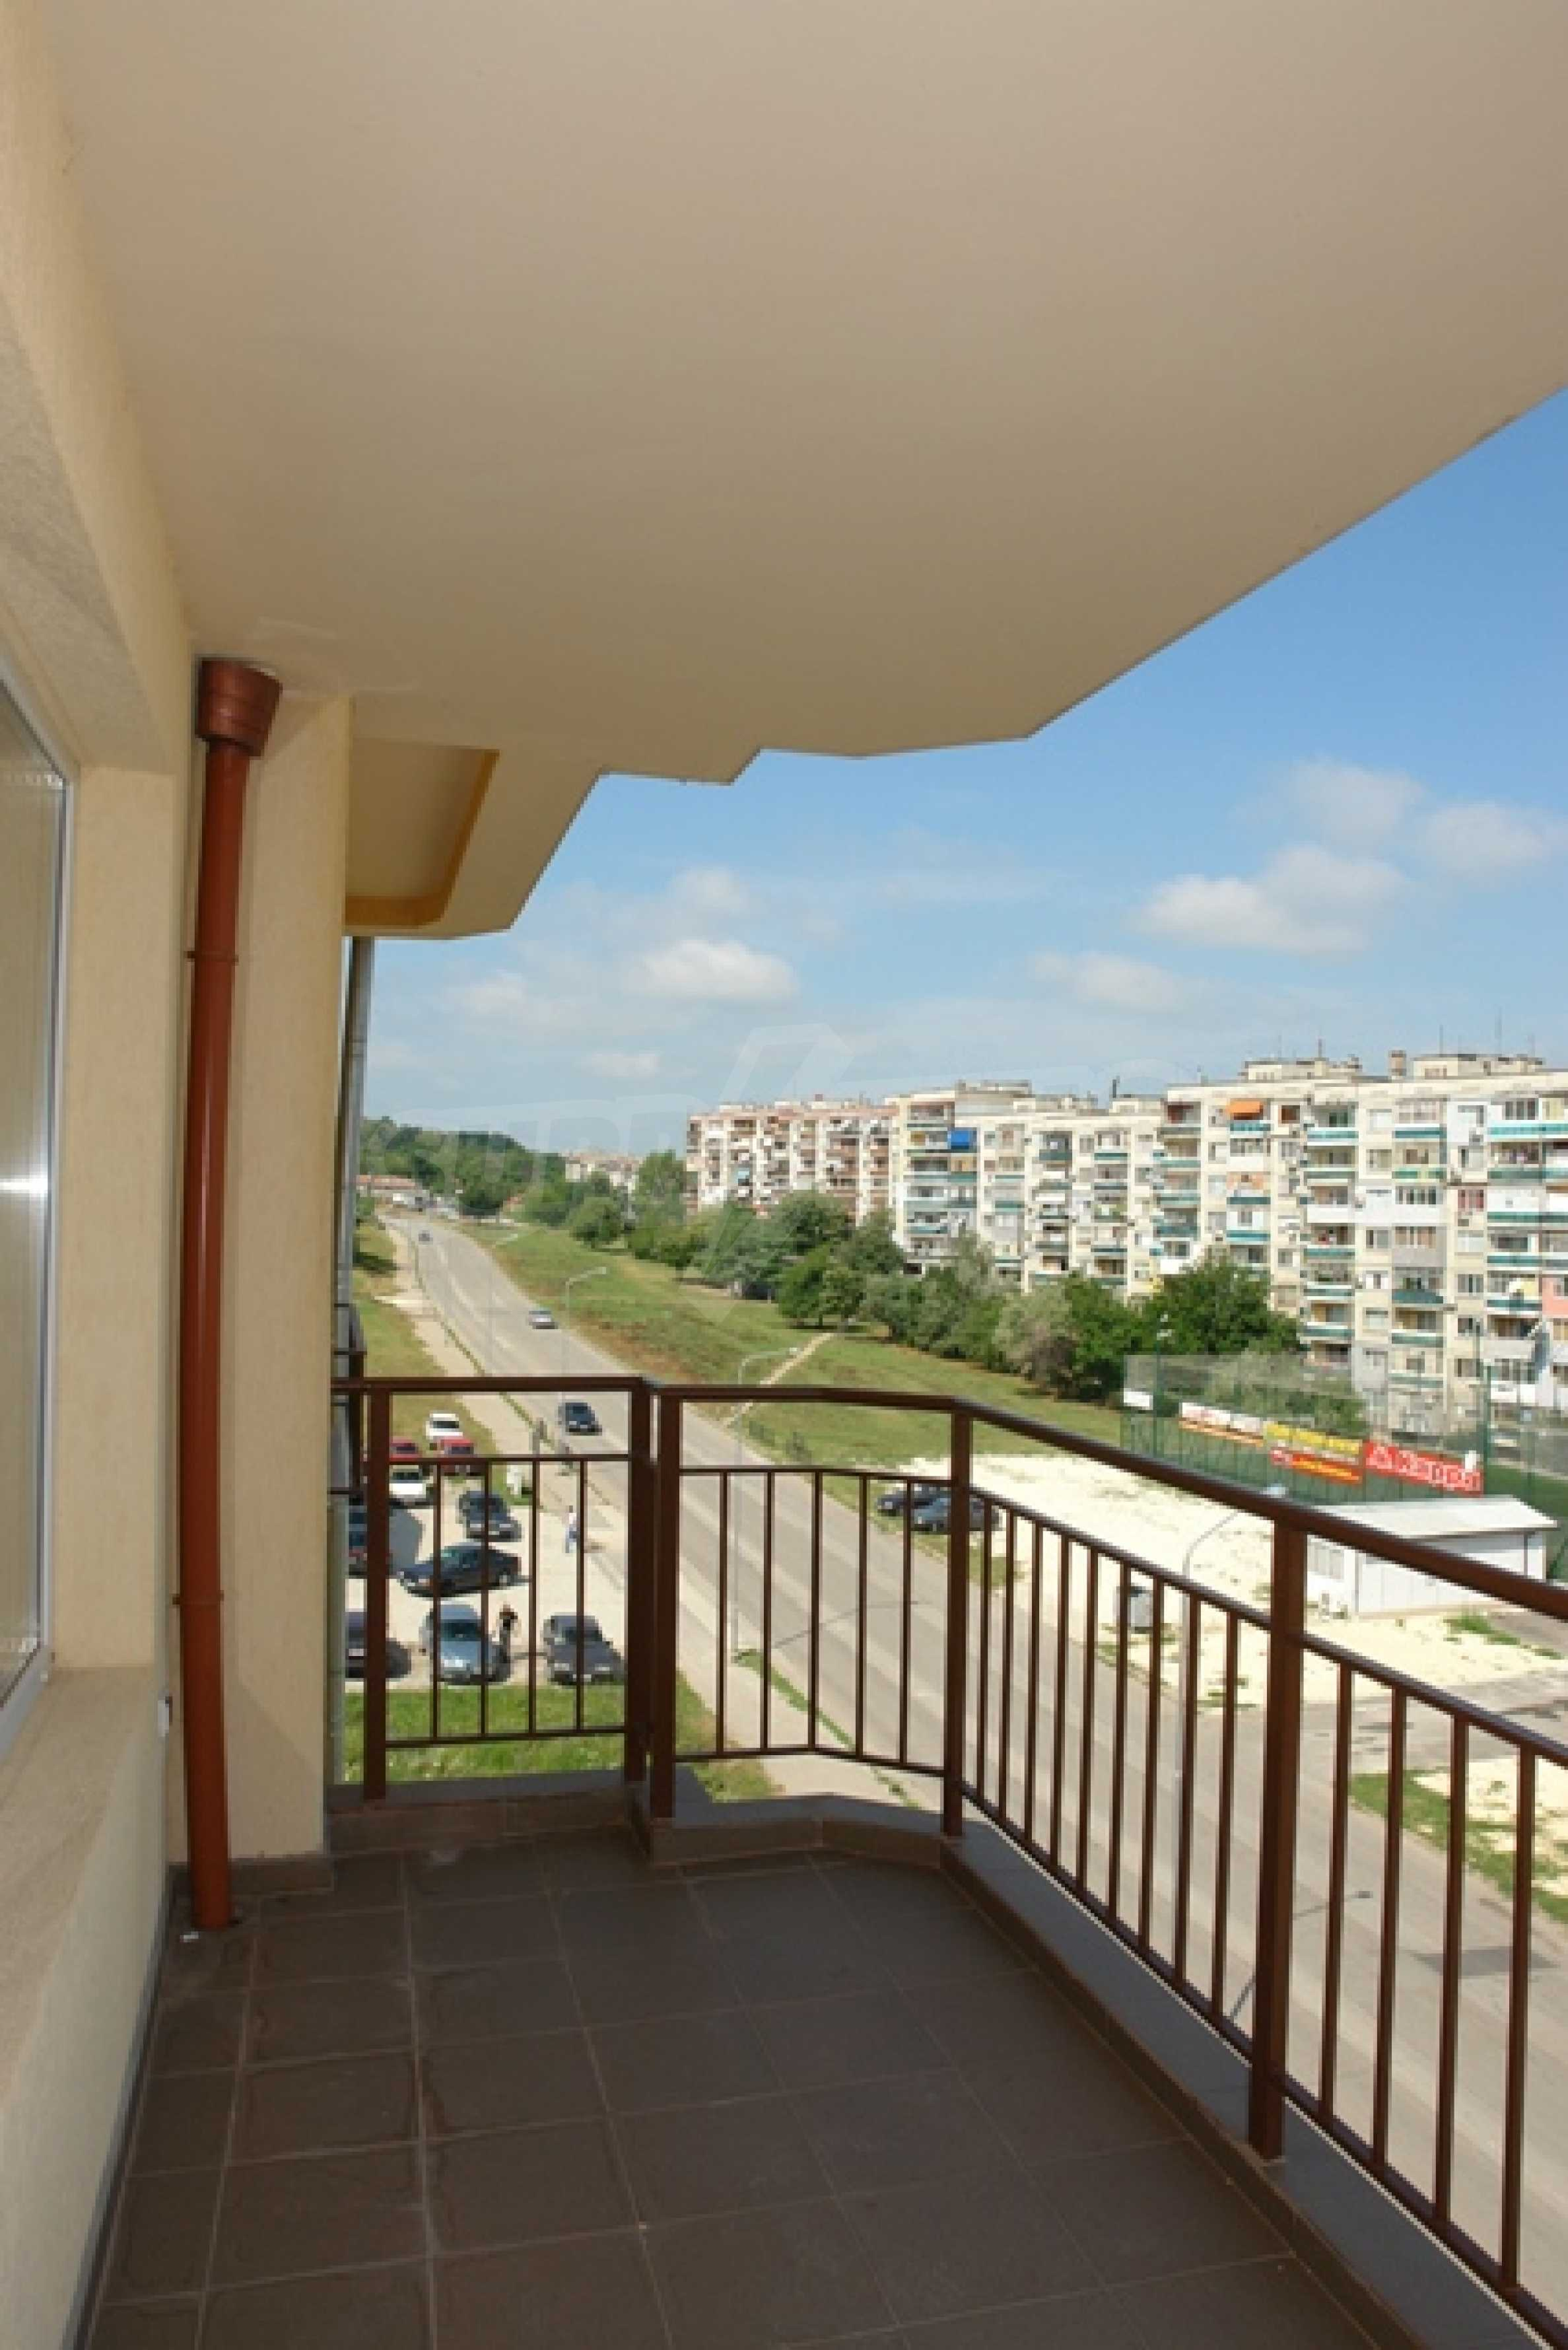 2-bedroom apartment in Rousse with amazing city panorama 9